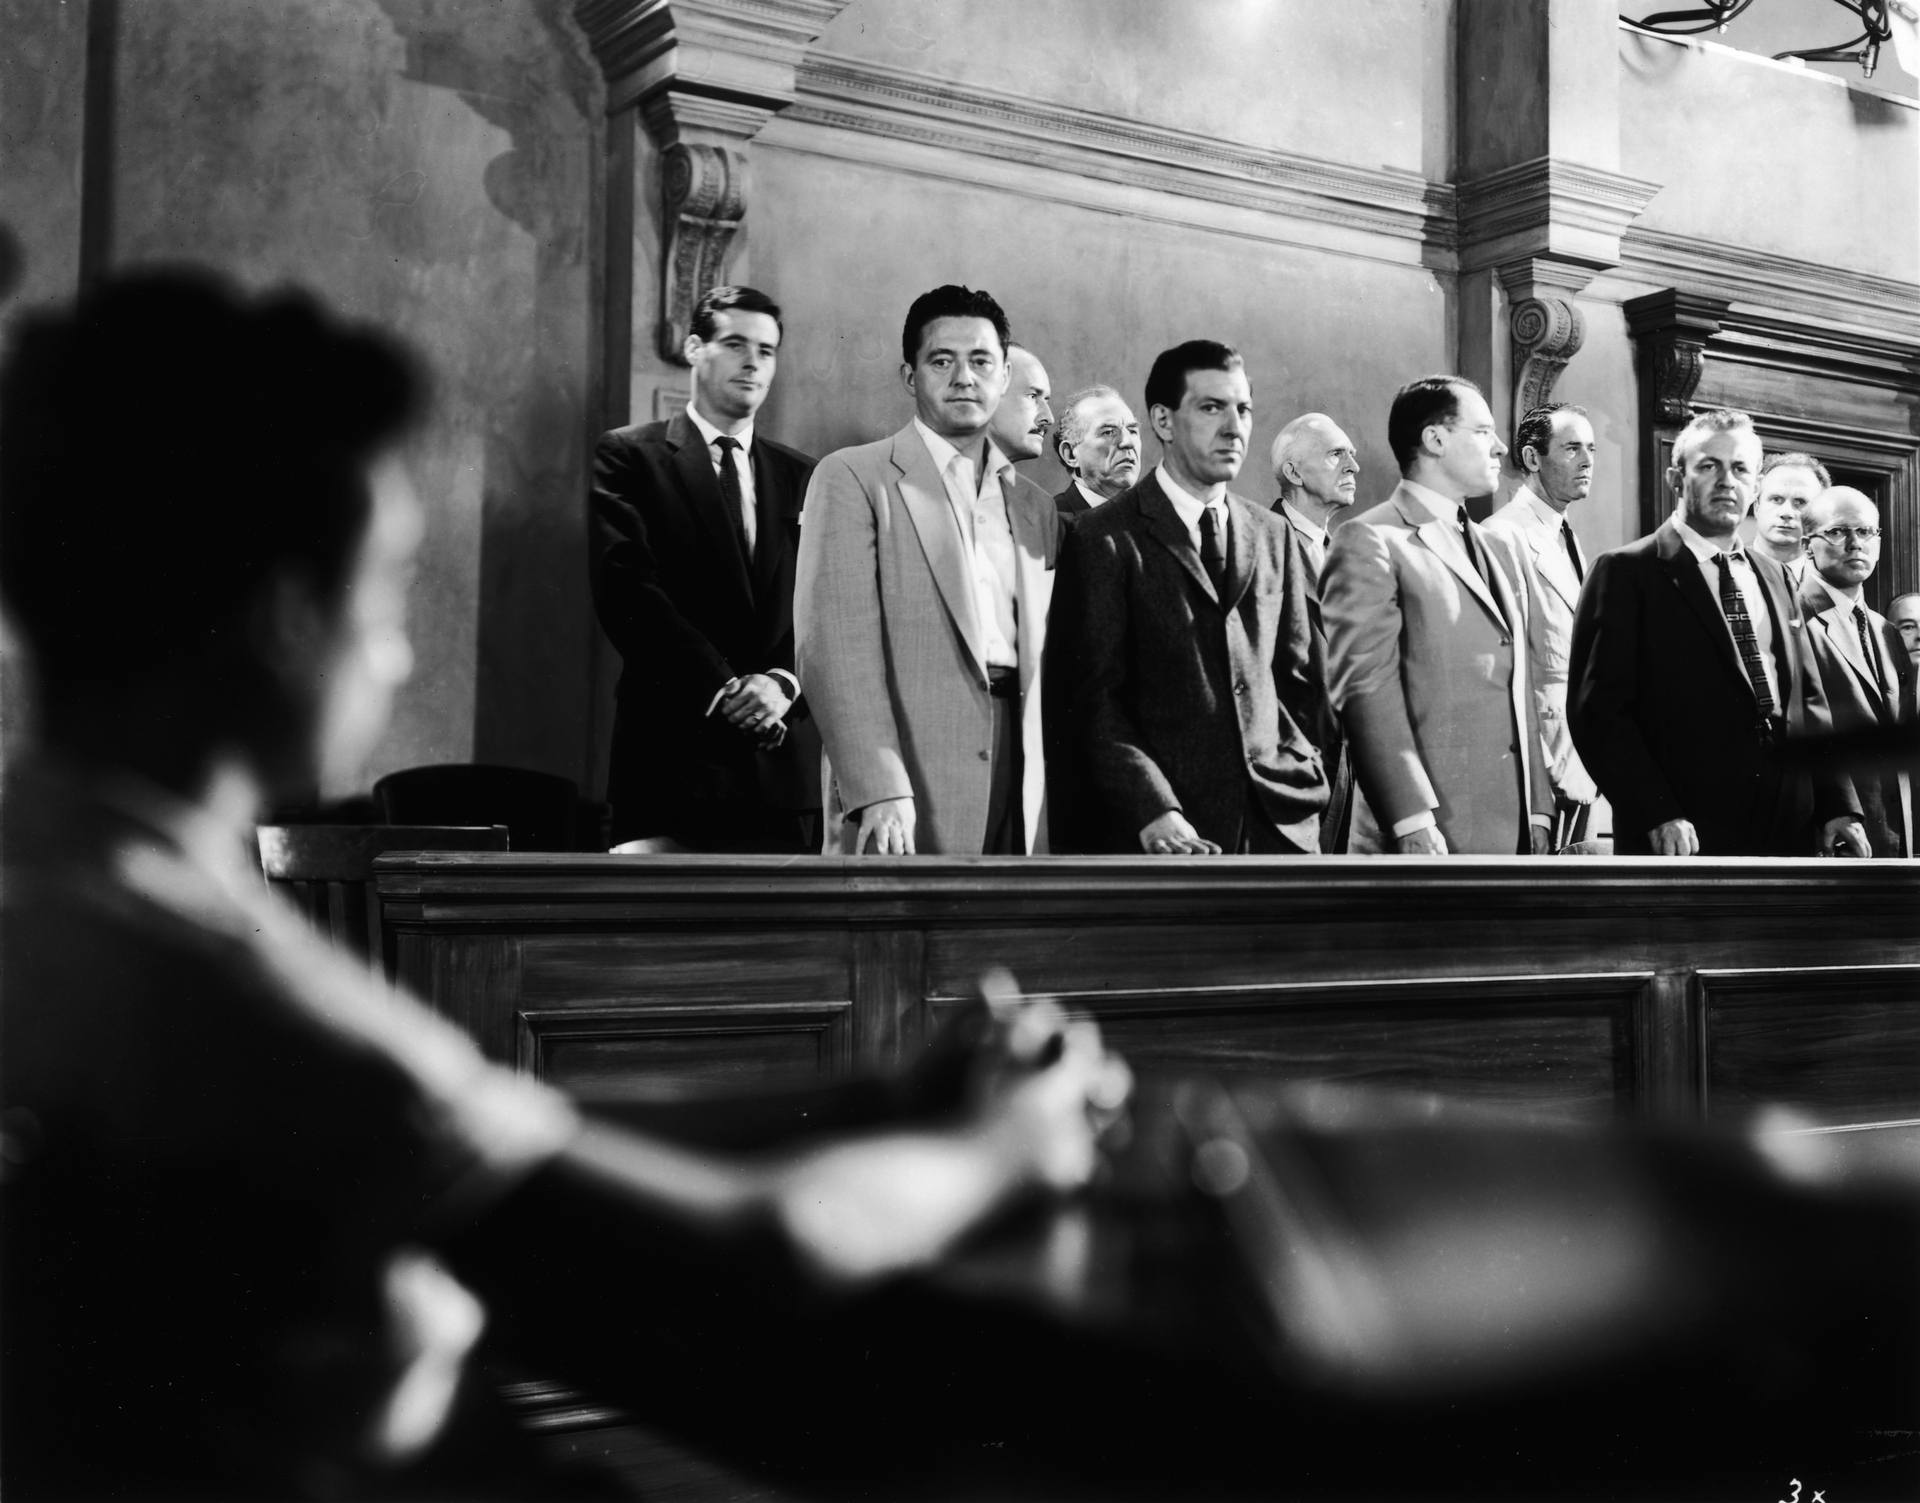 12 angry men reaction paper Prejudice in 12 angry men - 12 angry men is about 12 men who are the jury for an 18 year old accused of murder the judge states in the opening scene that it is a premeditated murder in the 1st degree, if found guilty will automatically receive the death penalty.